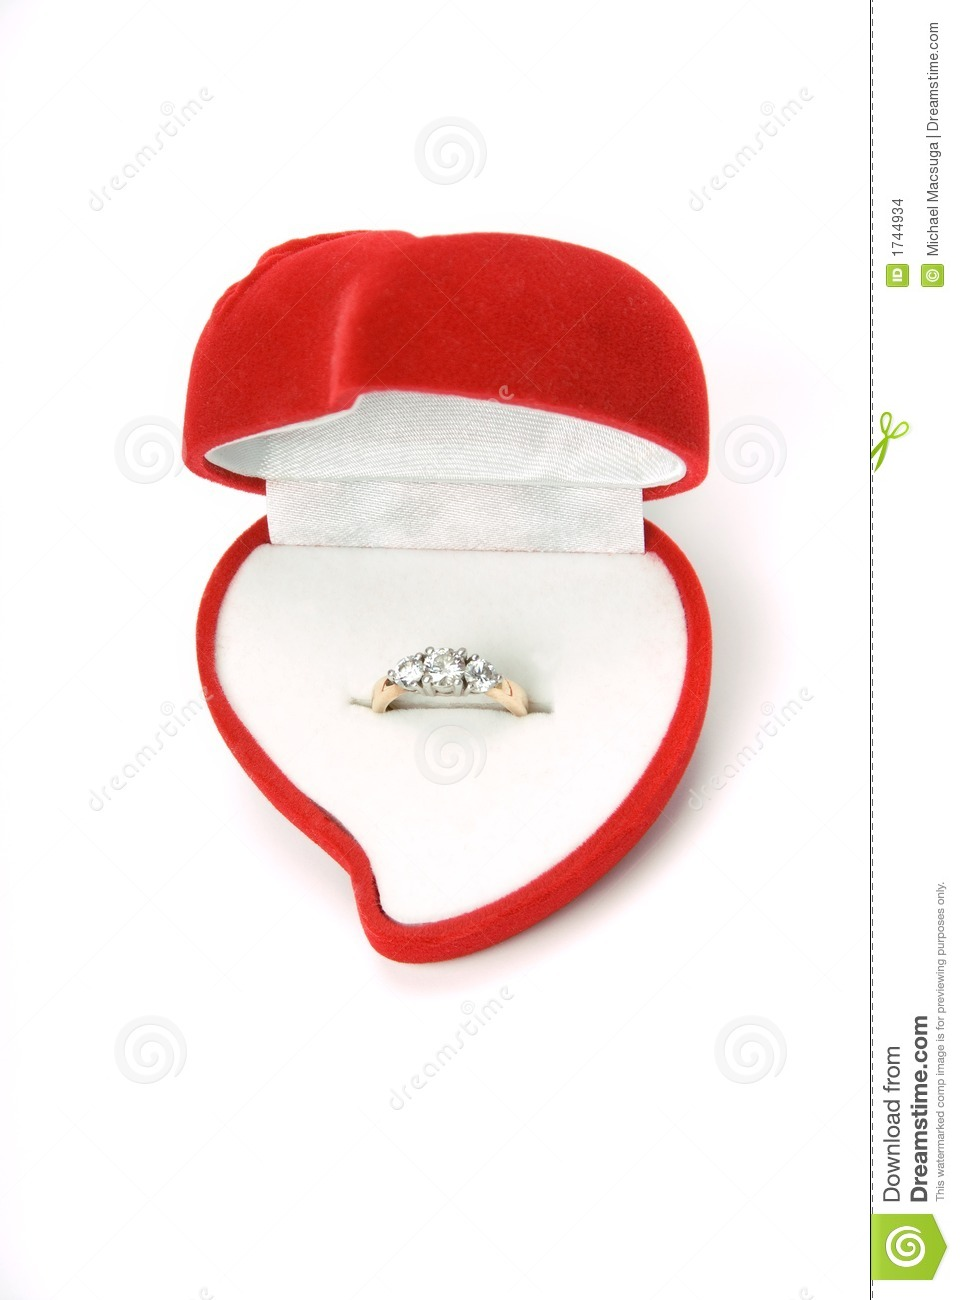 Ring in heart box 002 stock images image 1744934 for Heart ring box